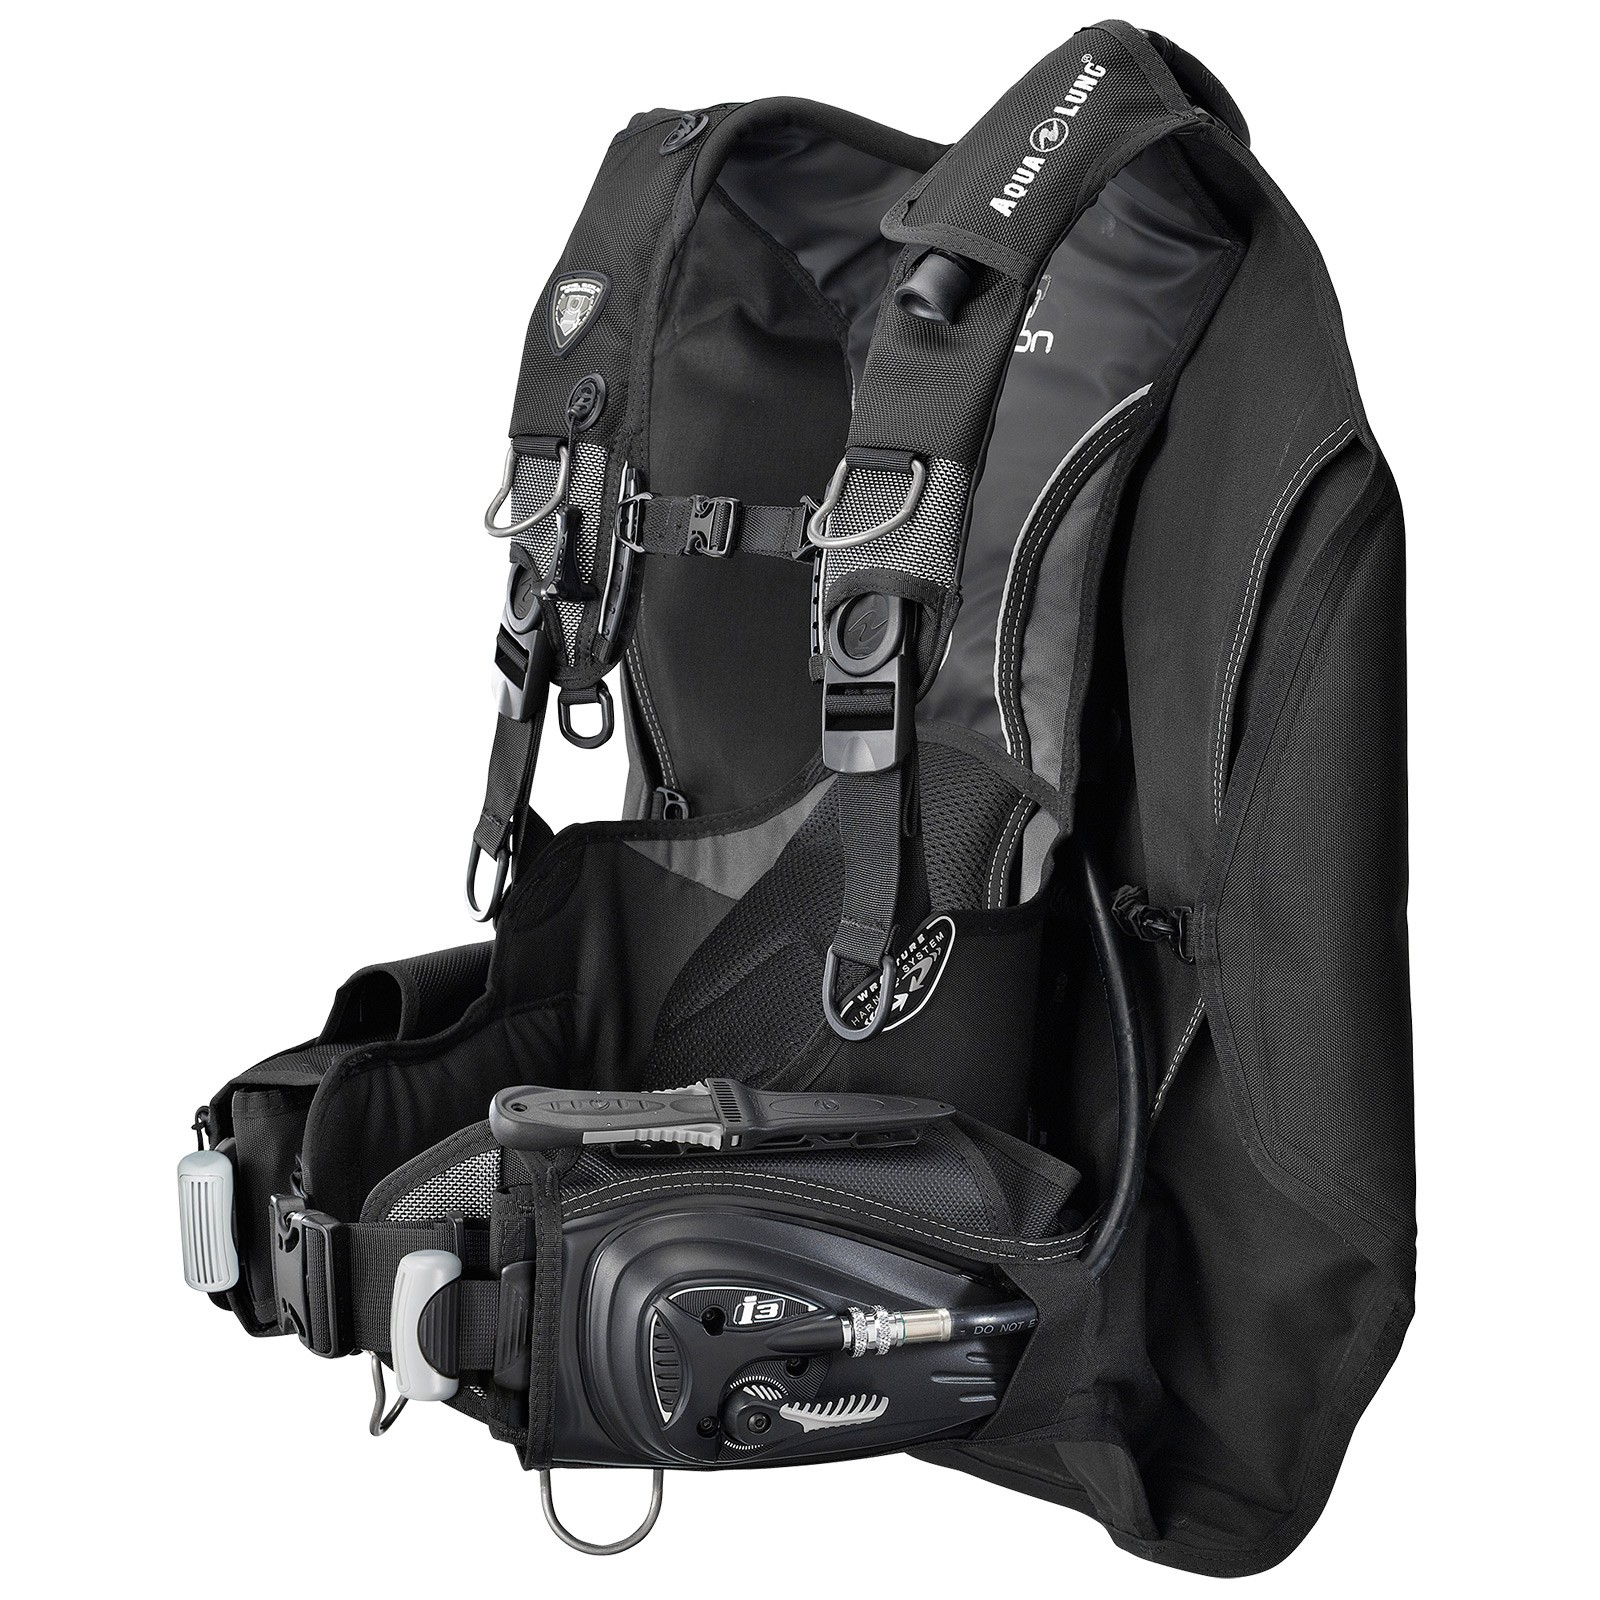 Aqua Lung Dimension i3 BCD - Angle 1